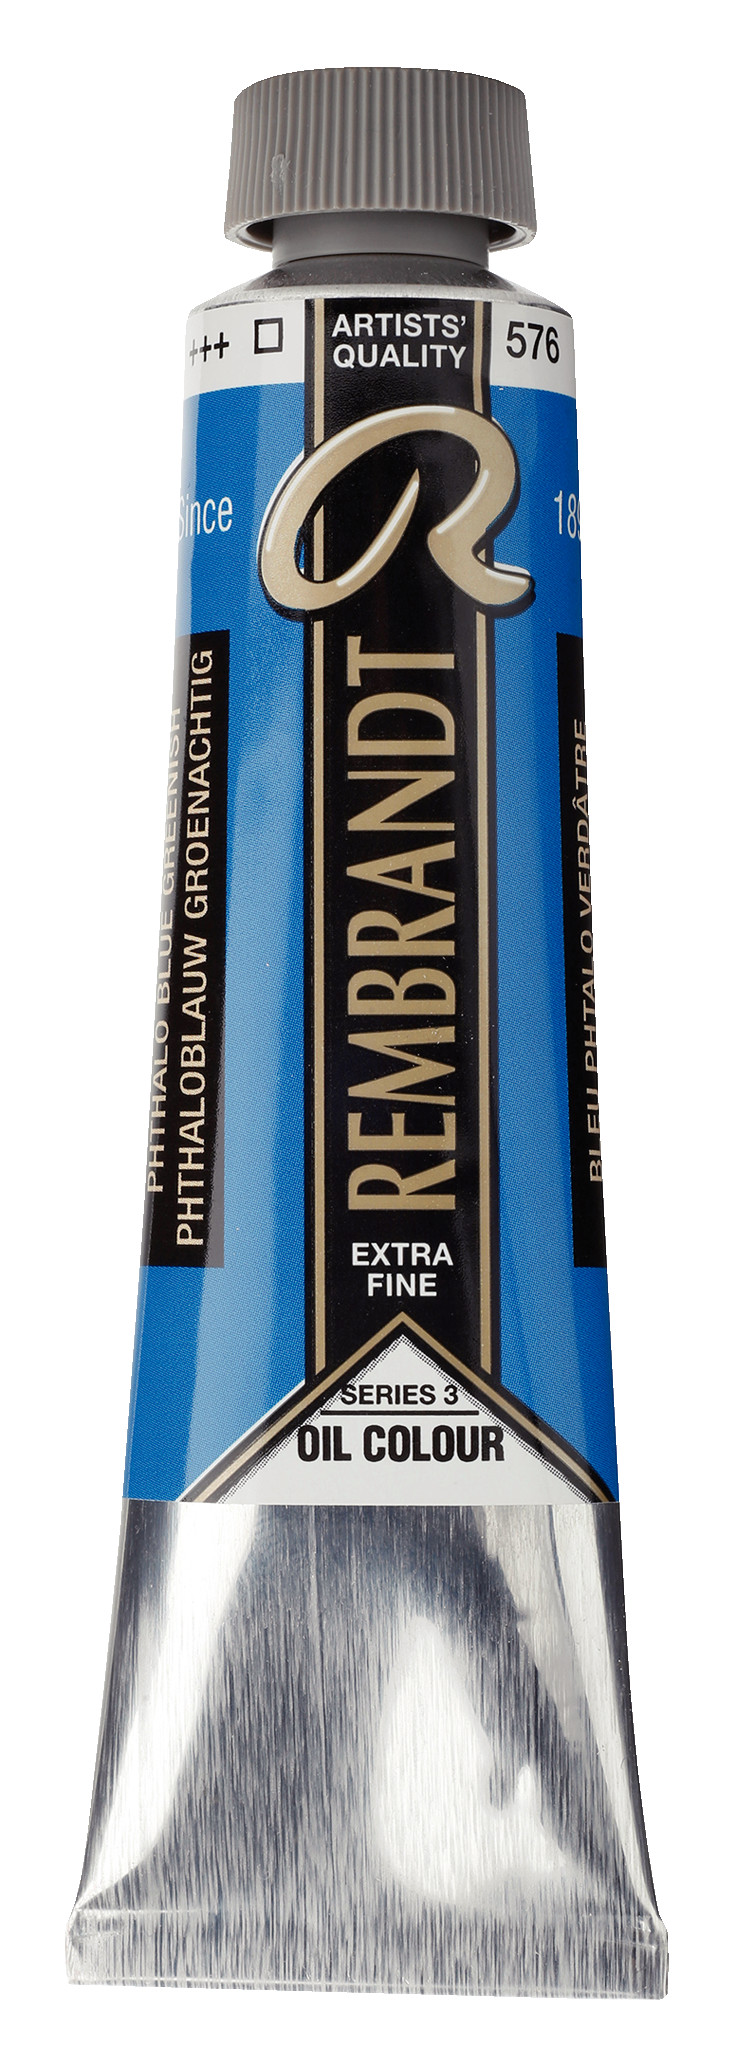 Rembrandt Oil colour Paint Phthalo Blue Green (576) 40ml Tube